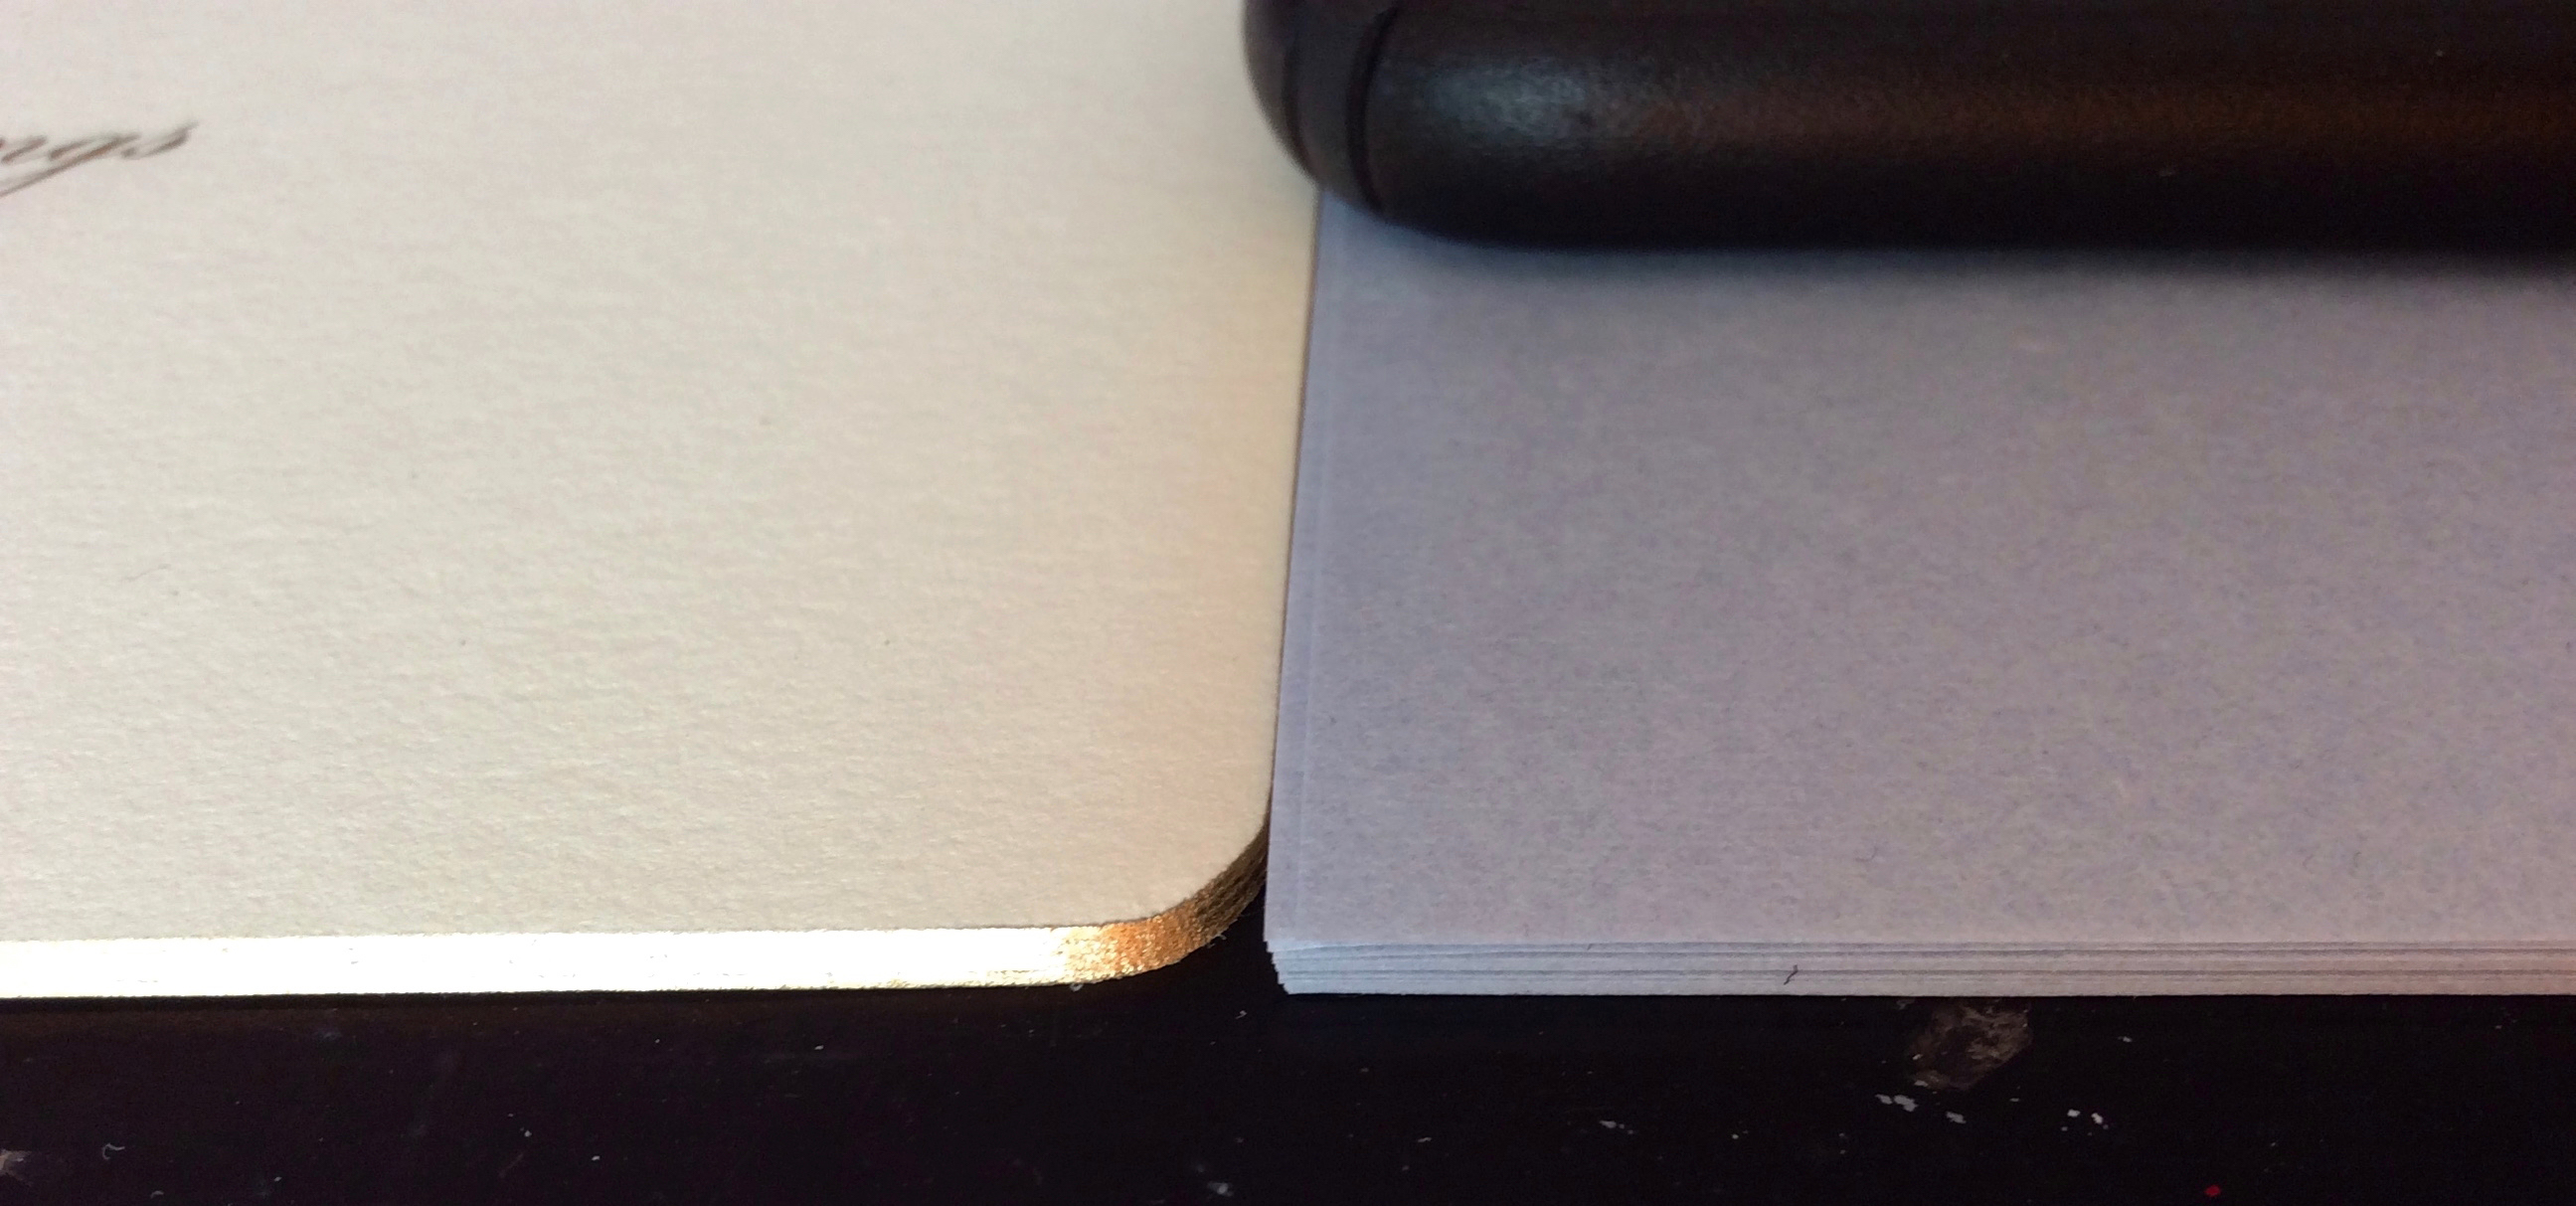 Thick and thin paper.